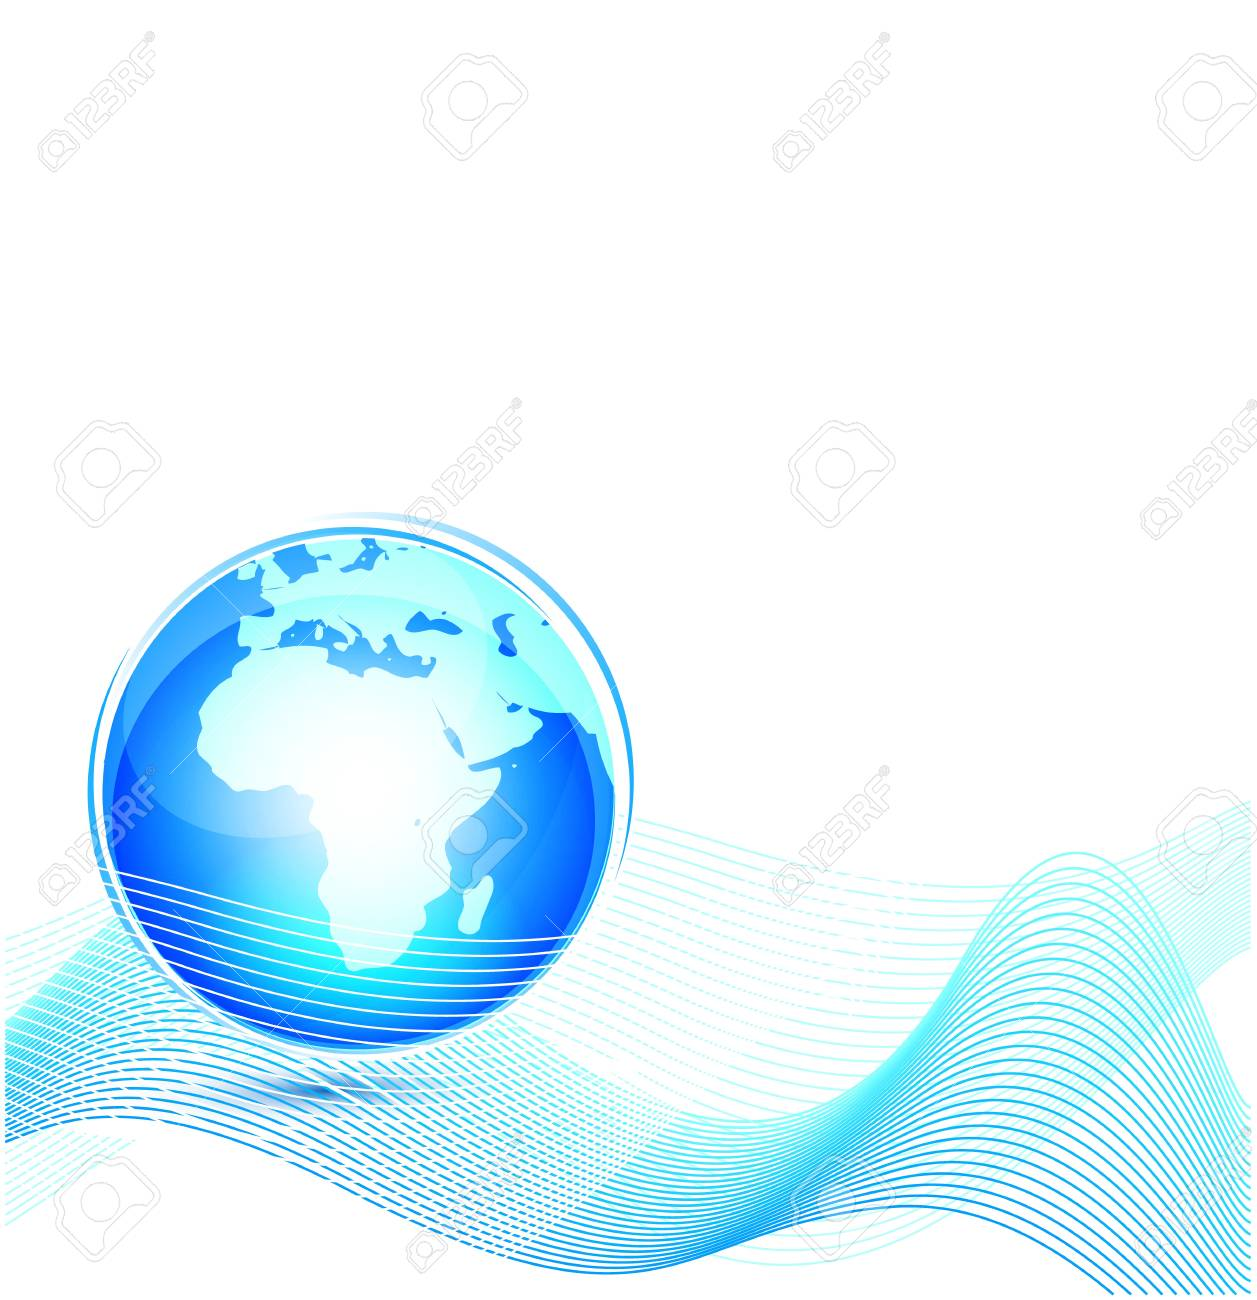 Technology world abstract background Stock Vector - 13269973